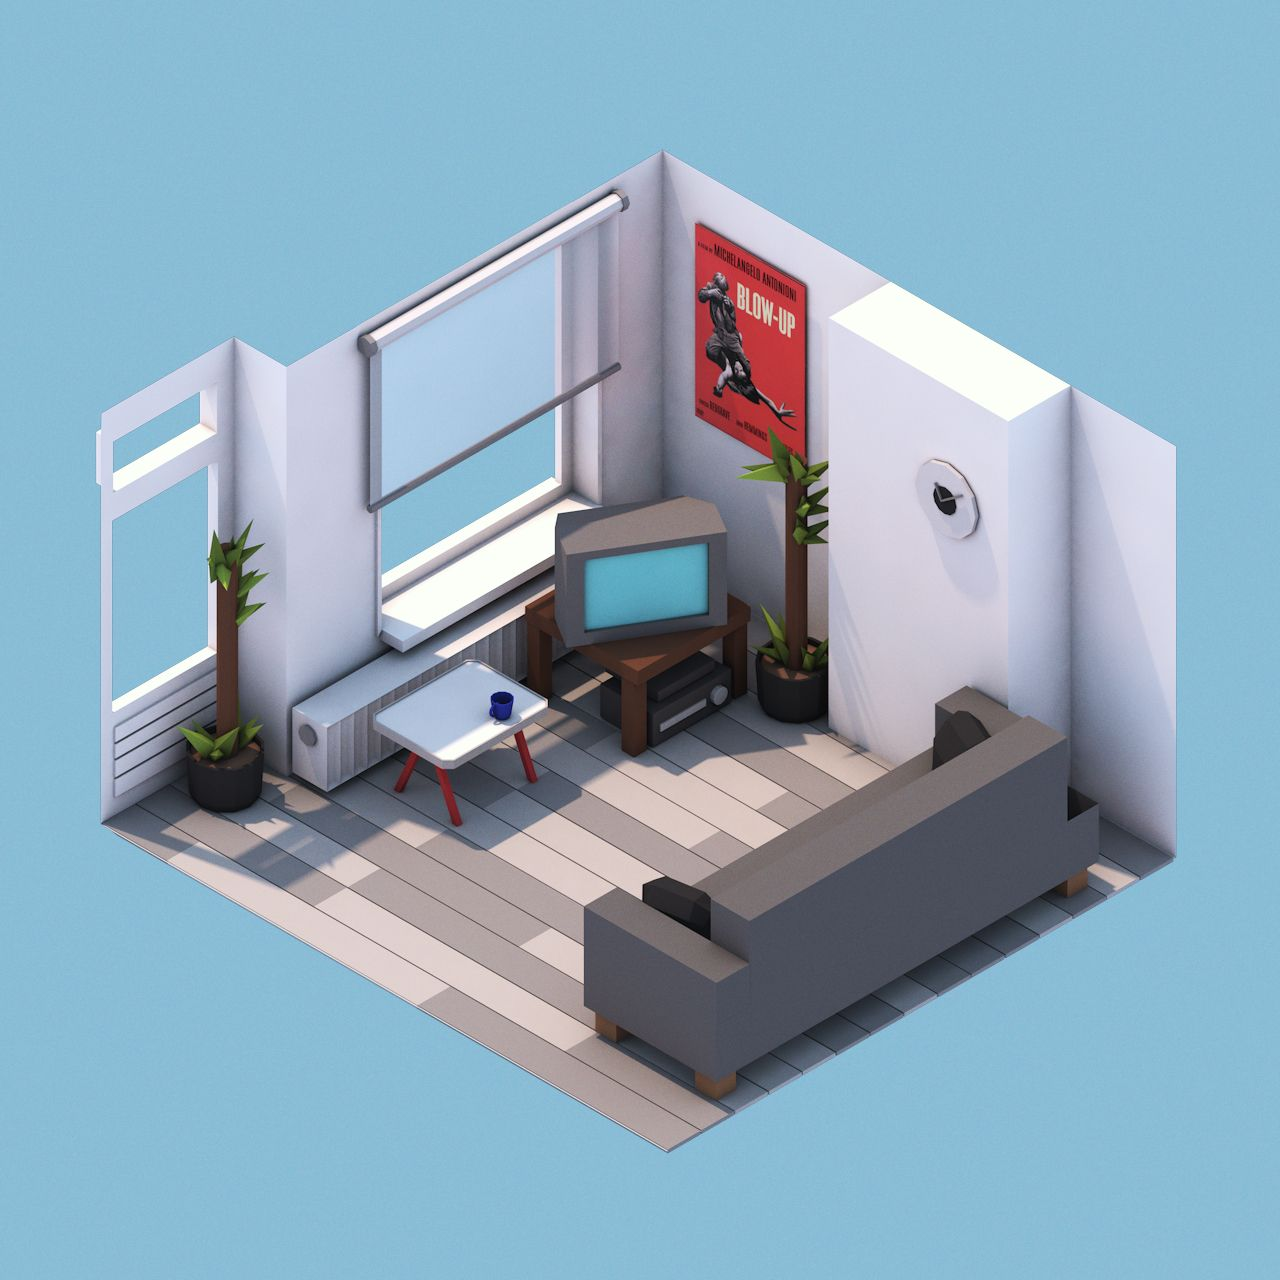 30 isometric renders - Michiel van den Berg - animation & design